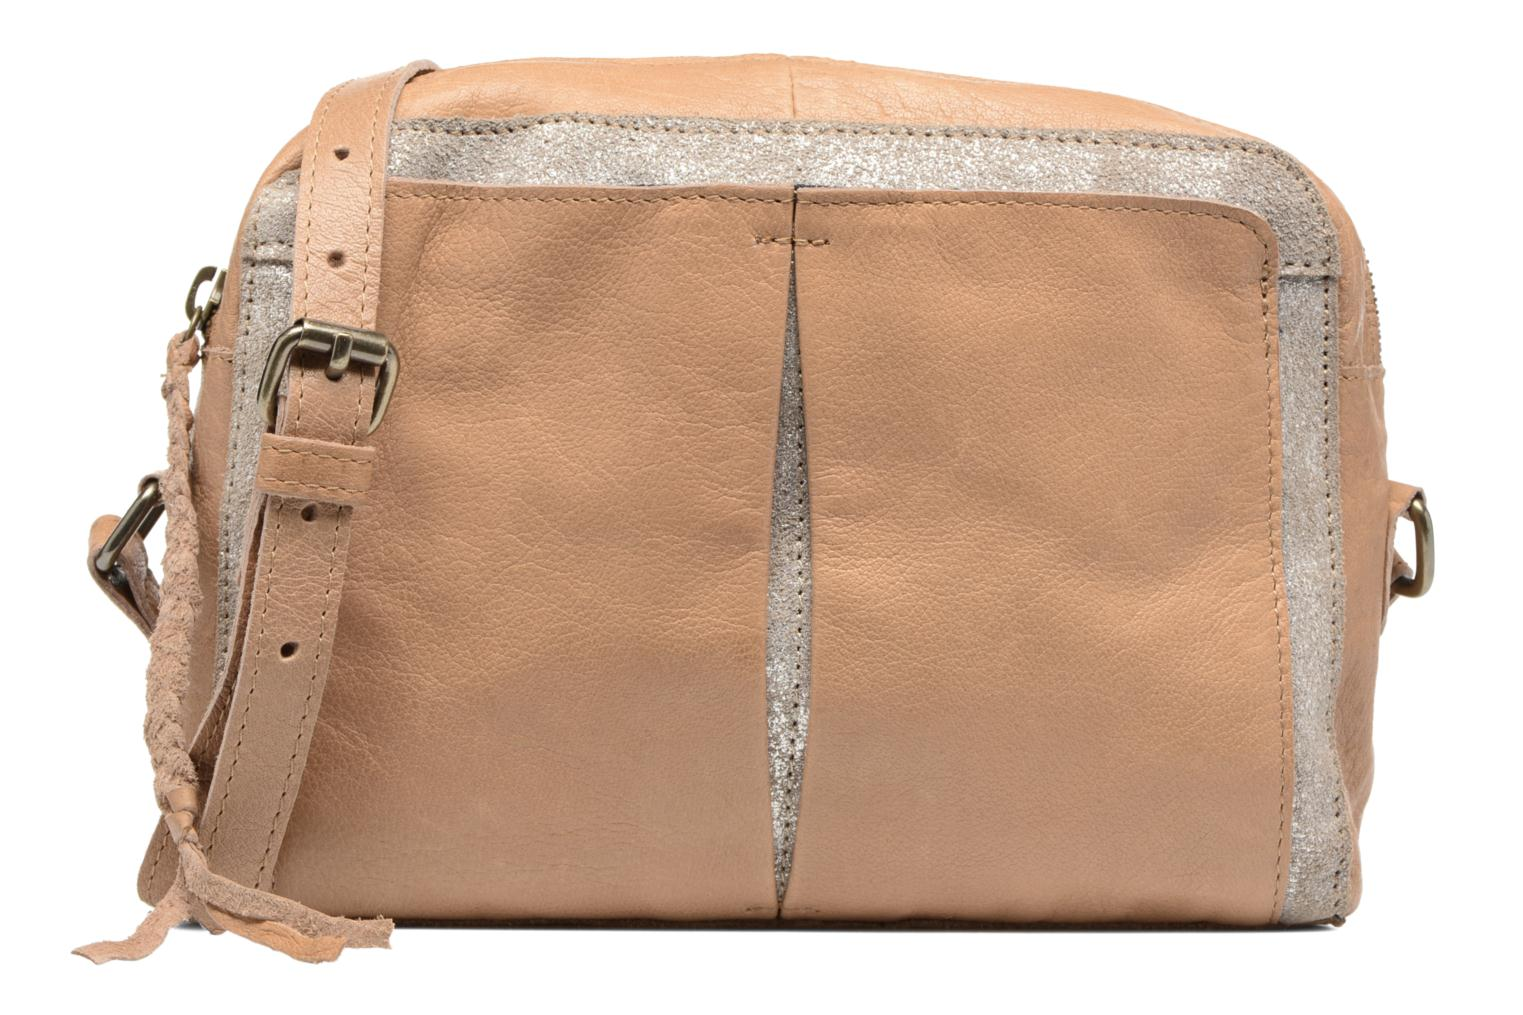 Jace Leather Crossover bag